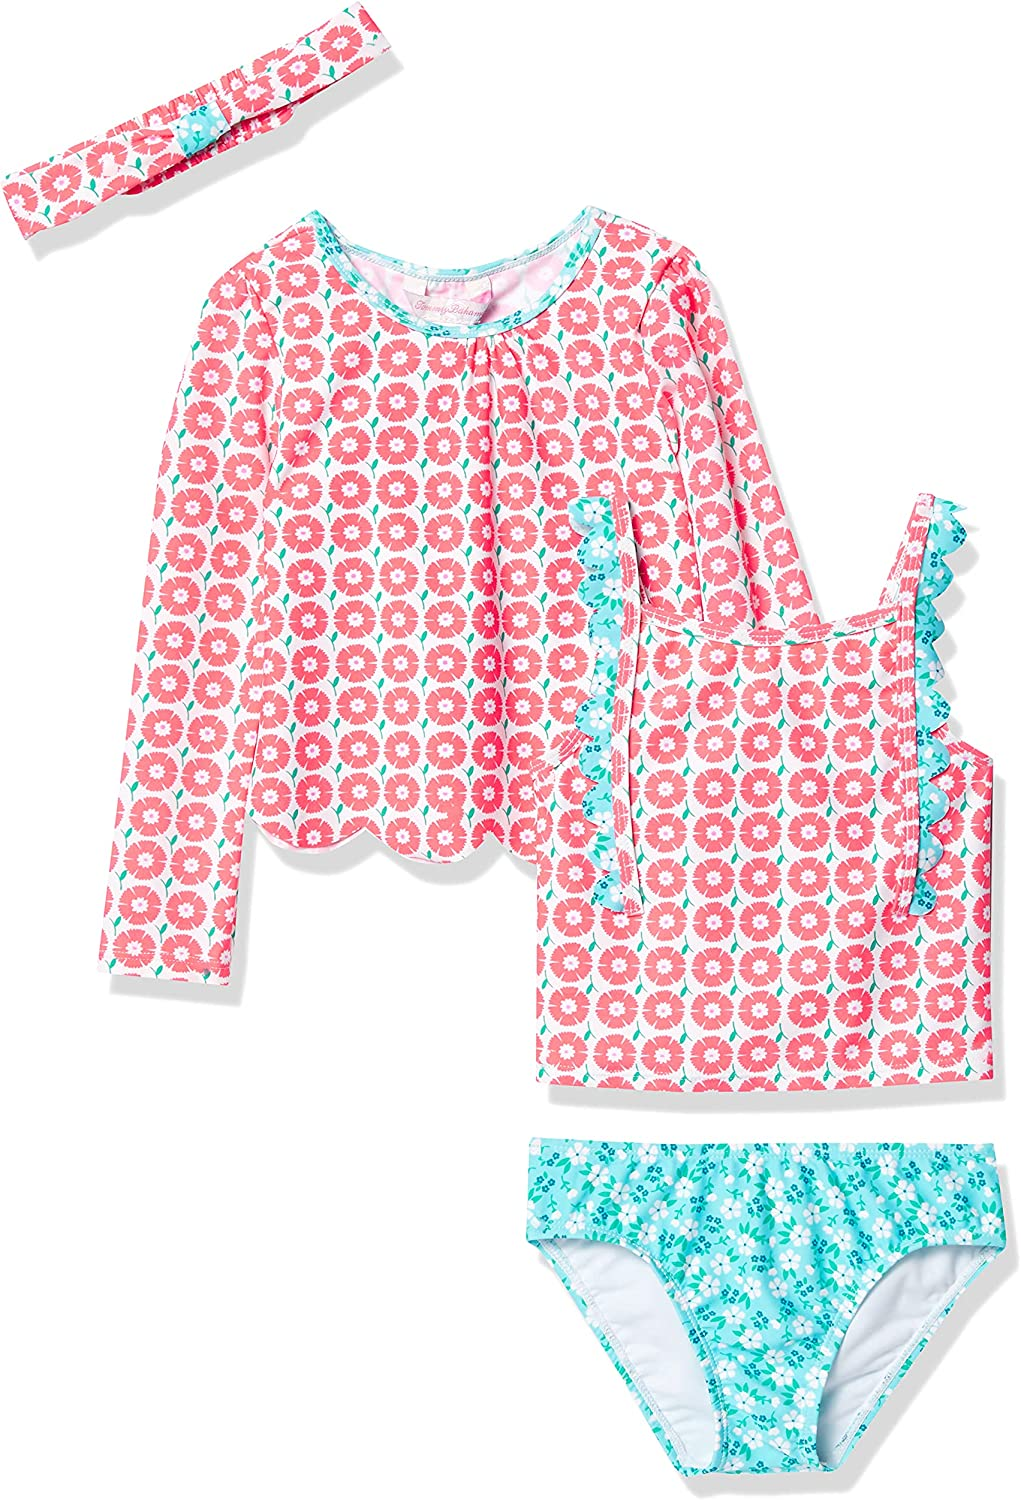 Tommy Bahama Girls' Rashguard Set We OFFer famous at cheap prices and Swimsuit Bottom